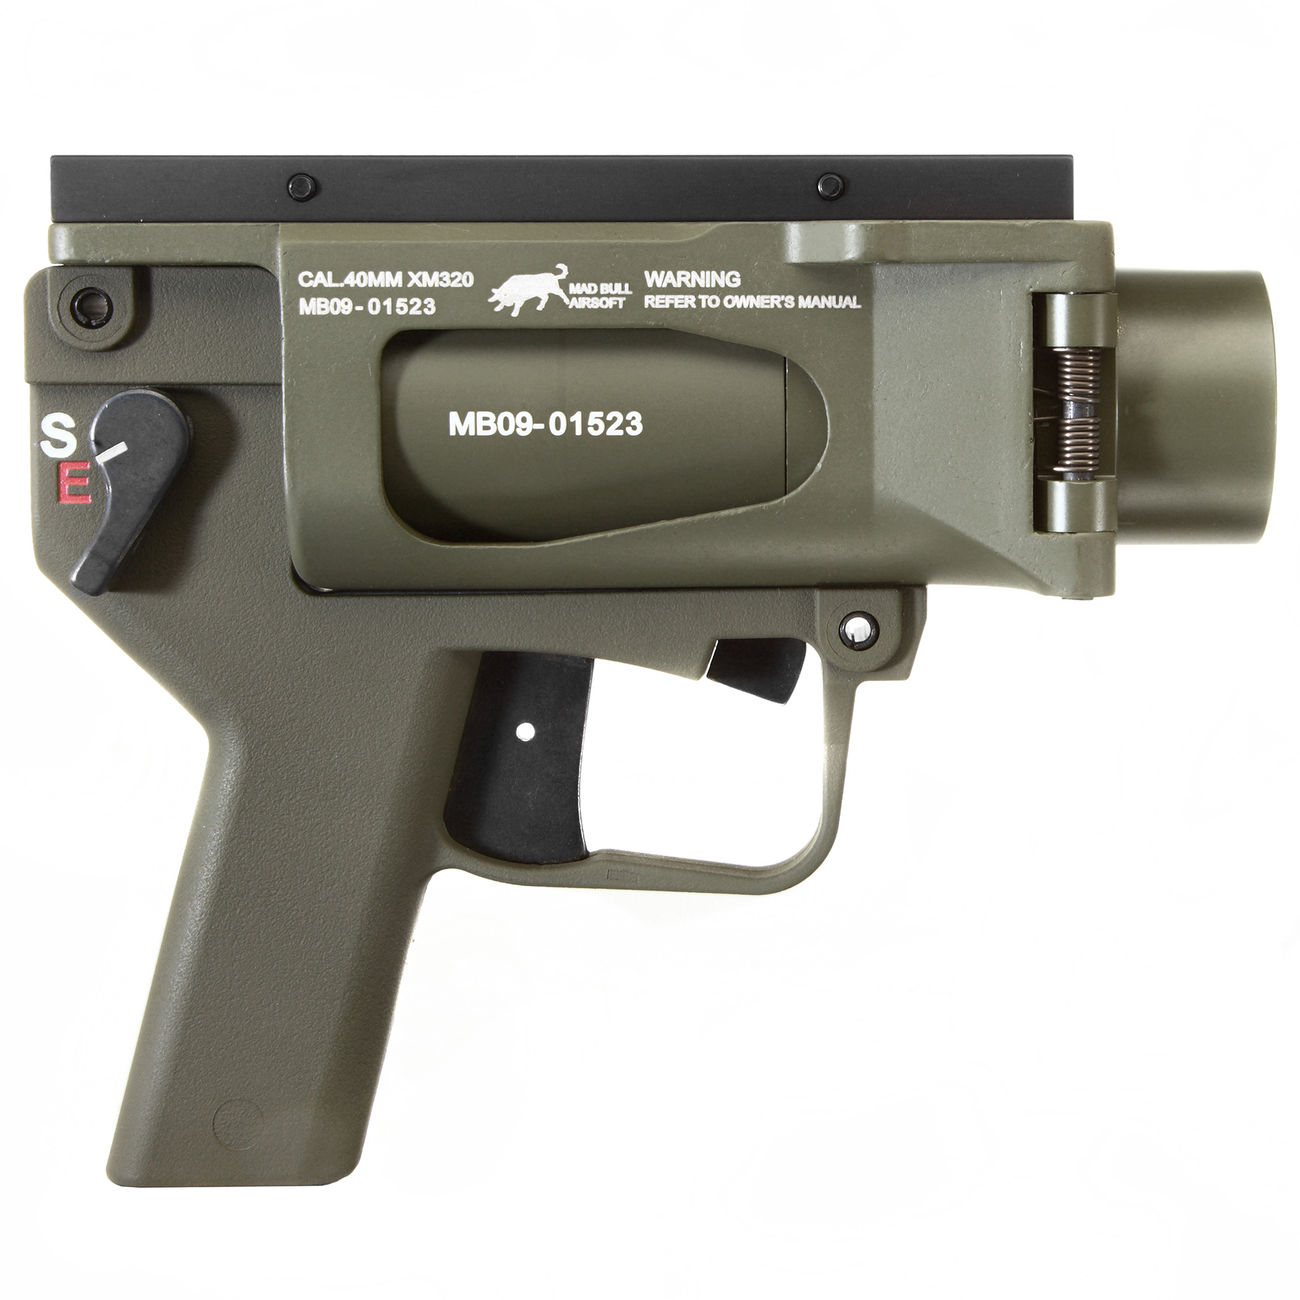 Mad Bull AGX 40mm Vollmetall Airsoft Pistolen-Launcher oliv 2